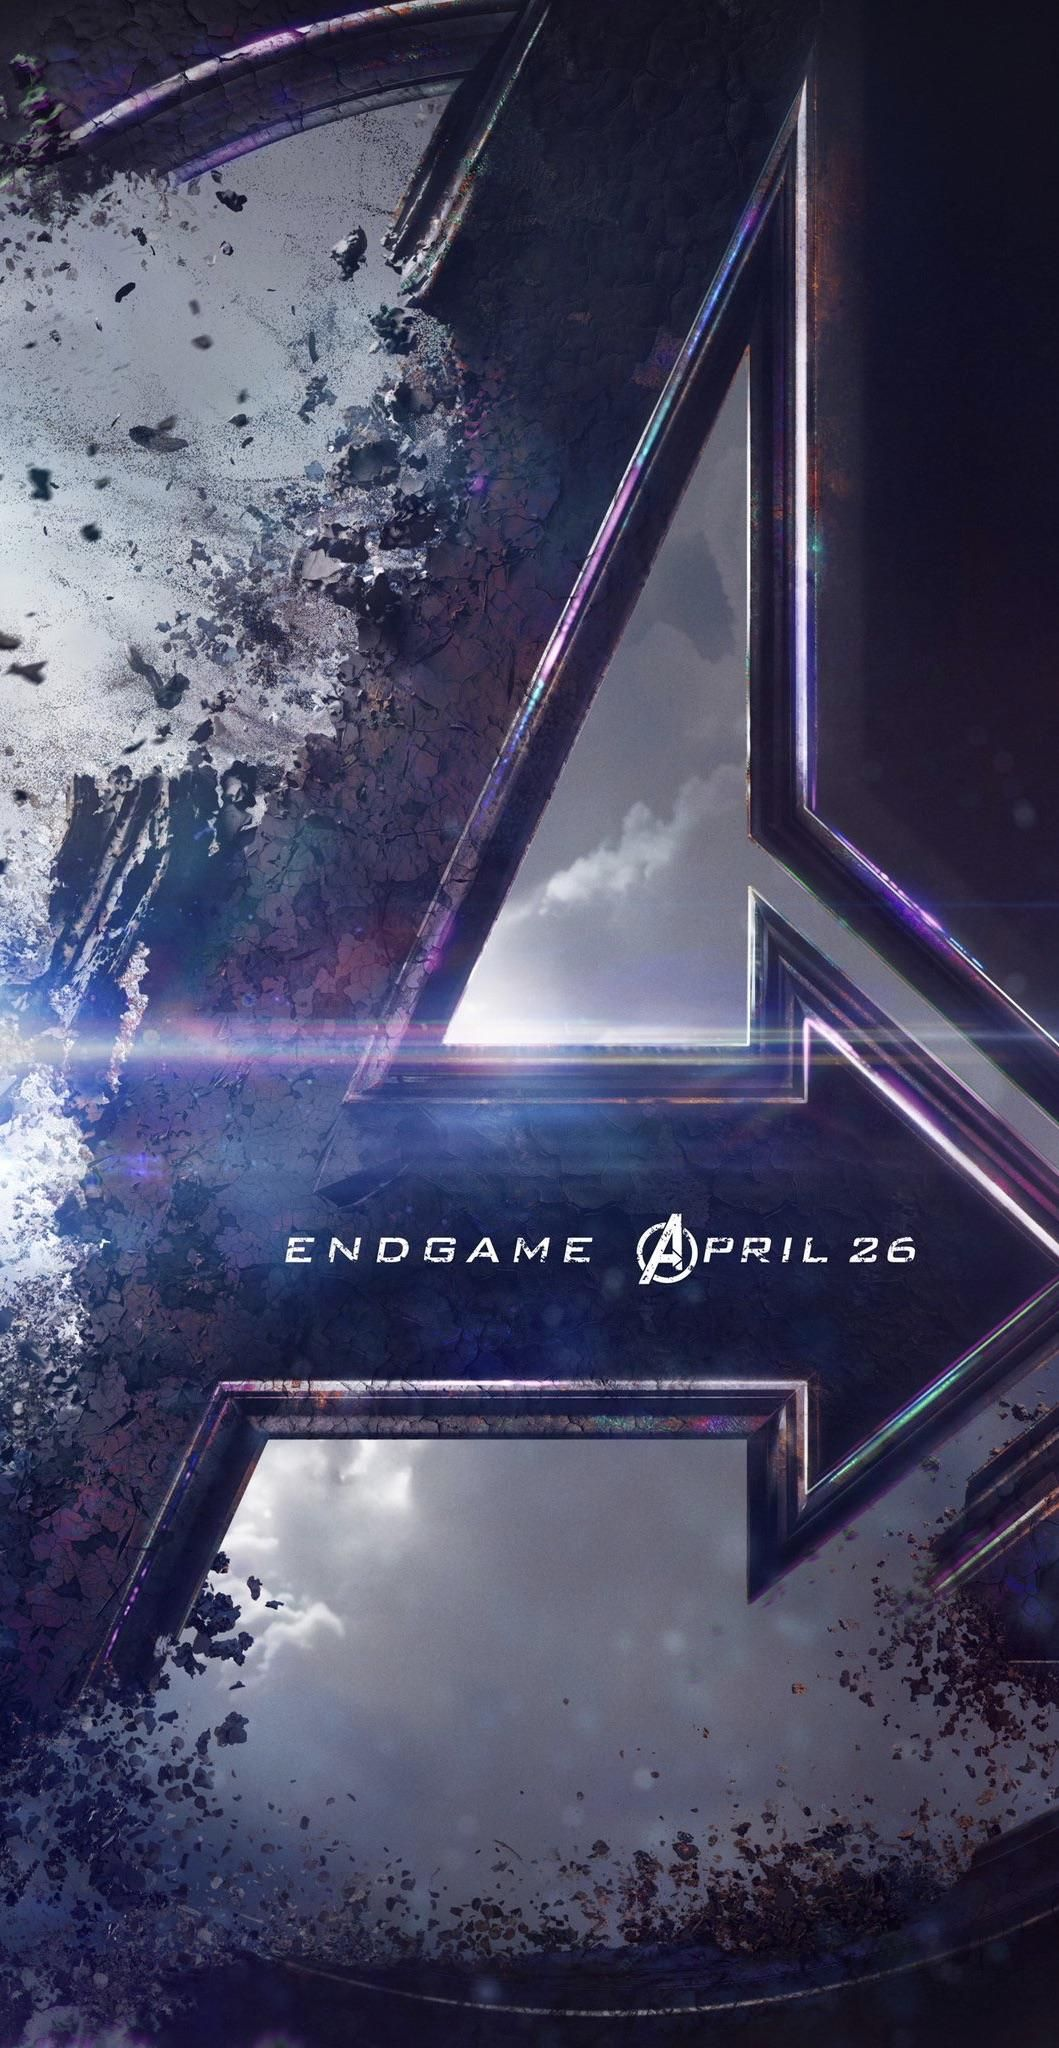 Avengers End Game Iphone Wallpaper Vingadores Ordem Dos Filmes